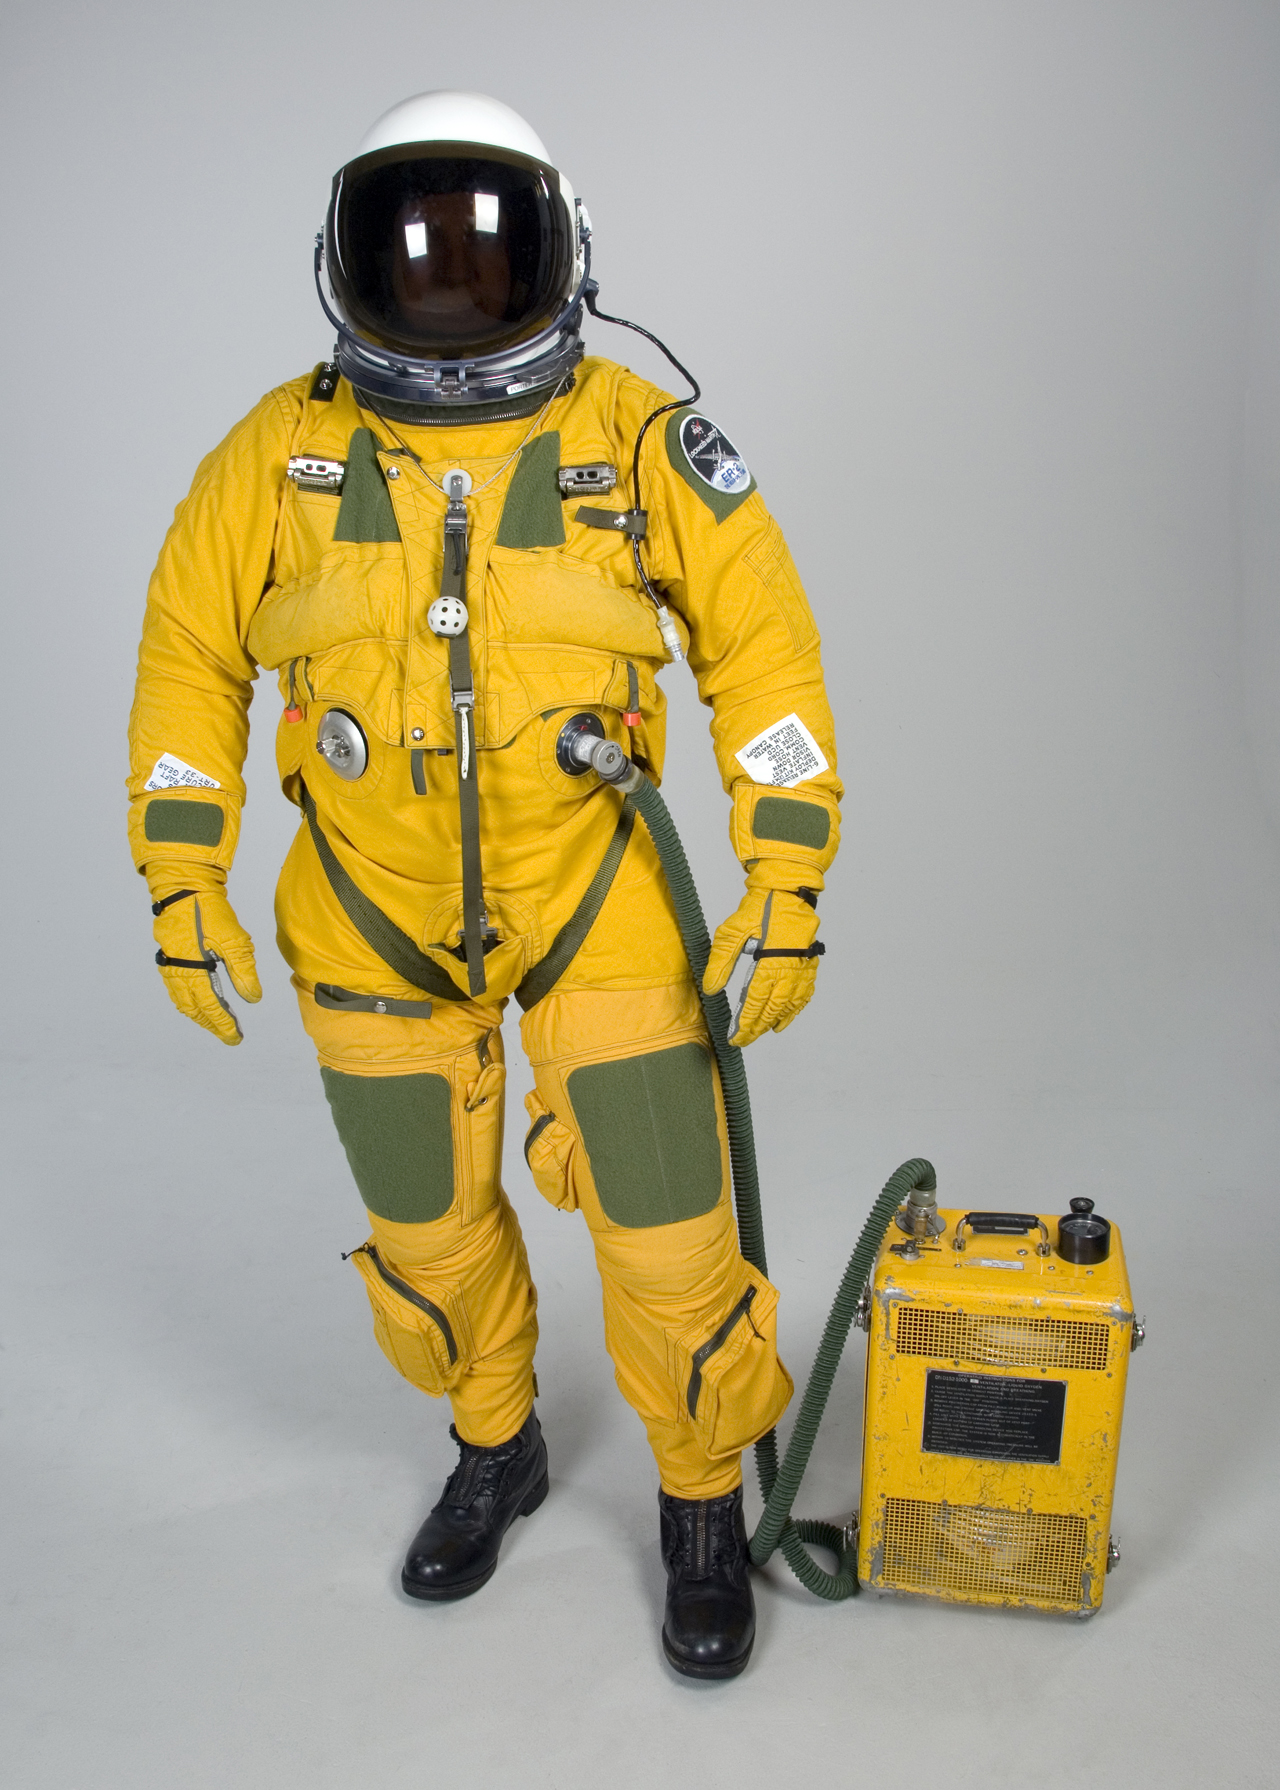 1000 images about space suit on pinterest space suits for Space suit design